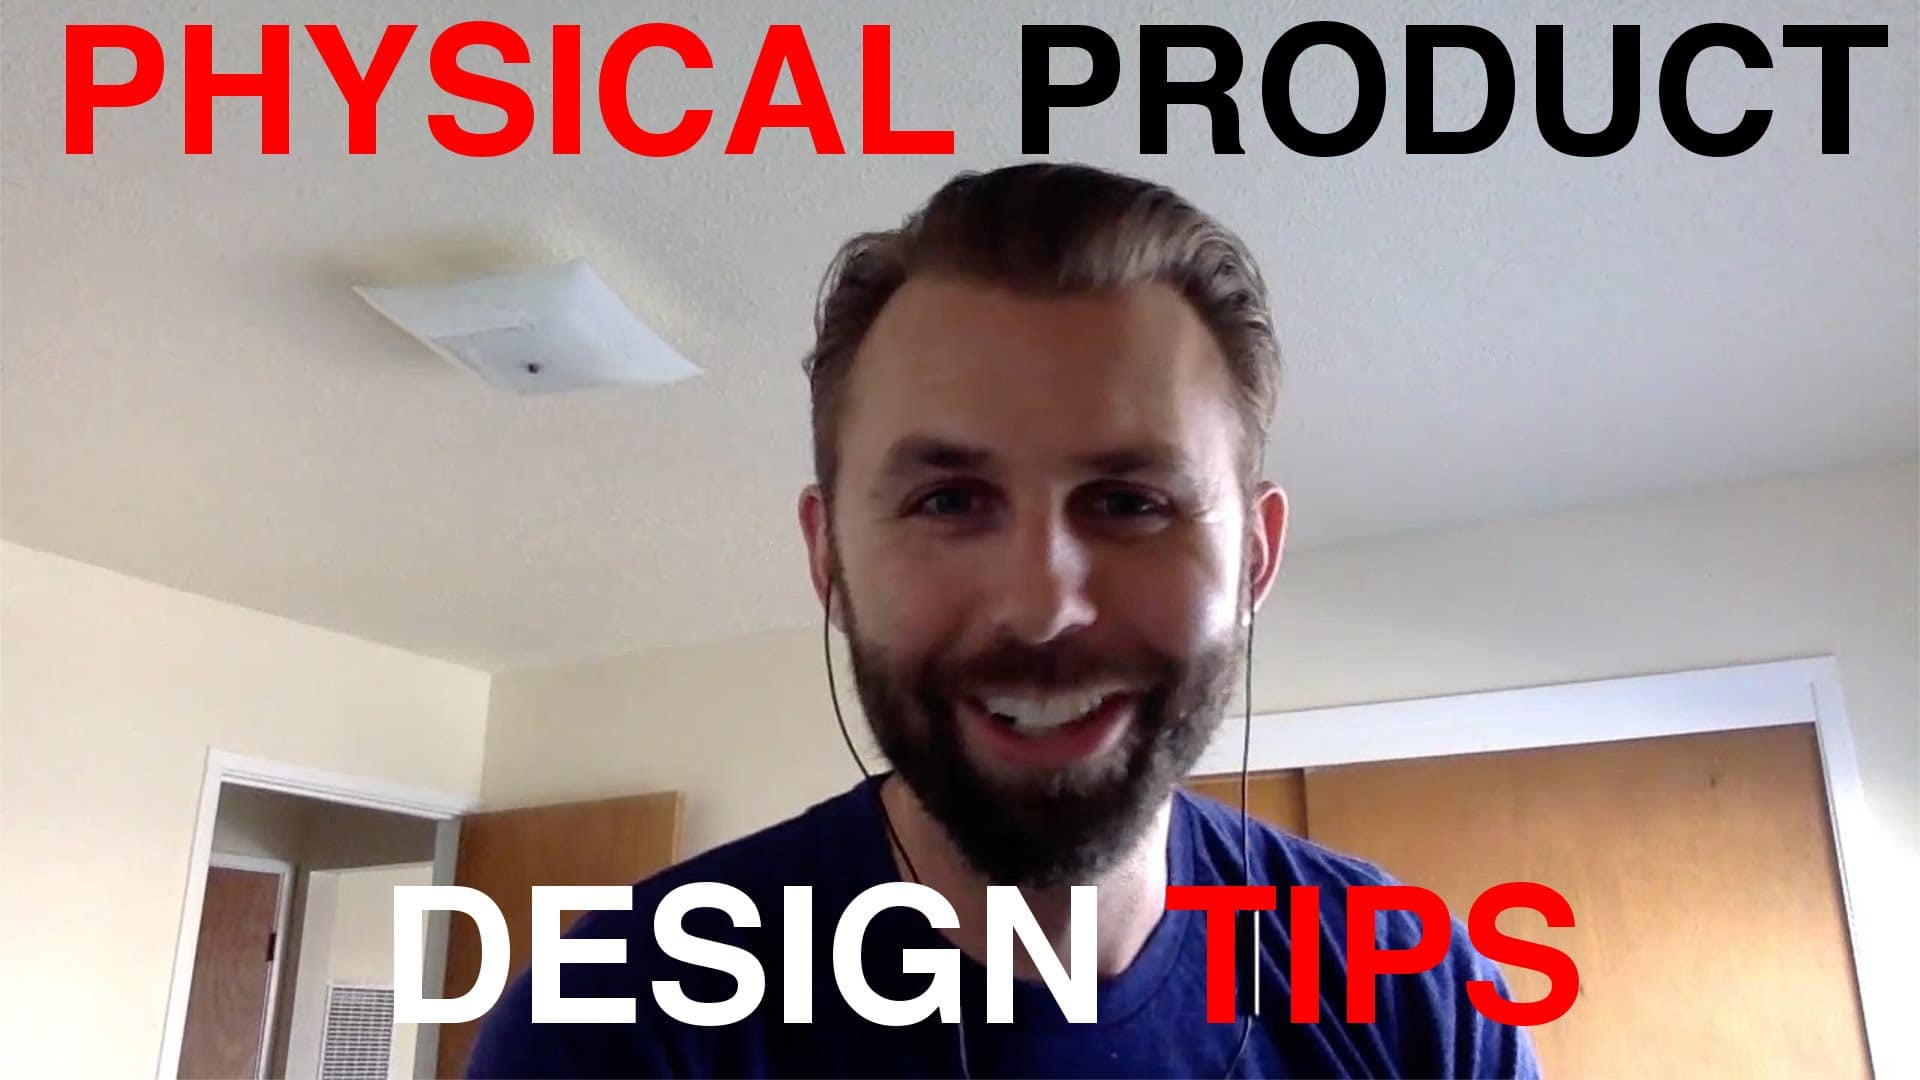 HOW TO DESIGN YOUR PHYSICAL PRODUCT IDEA